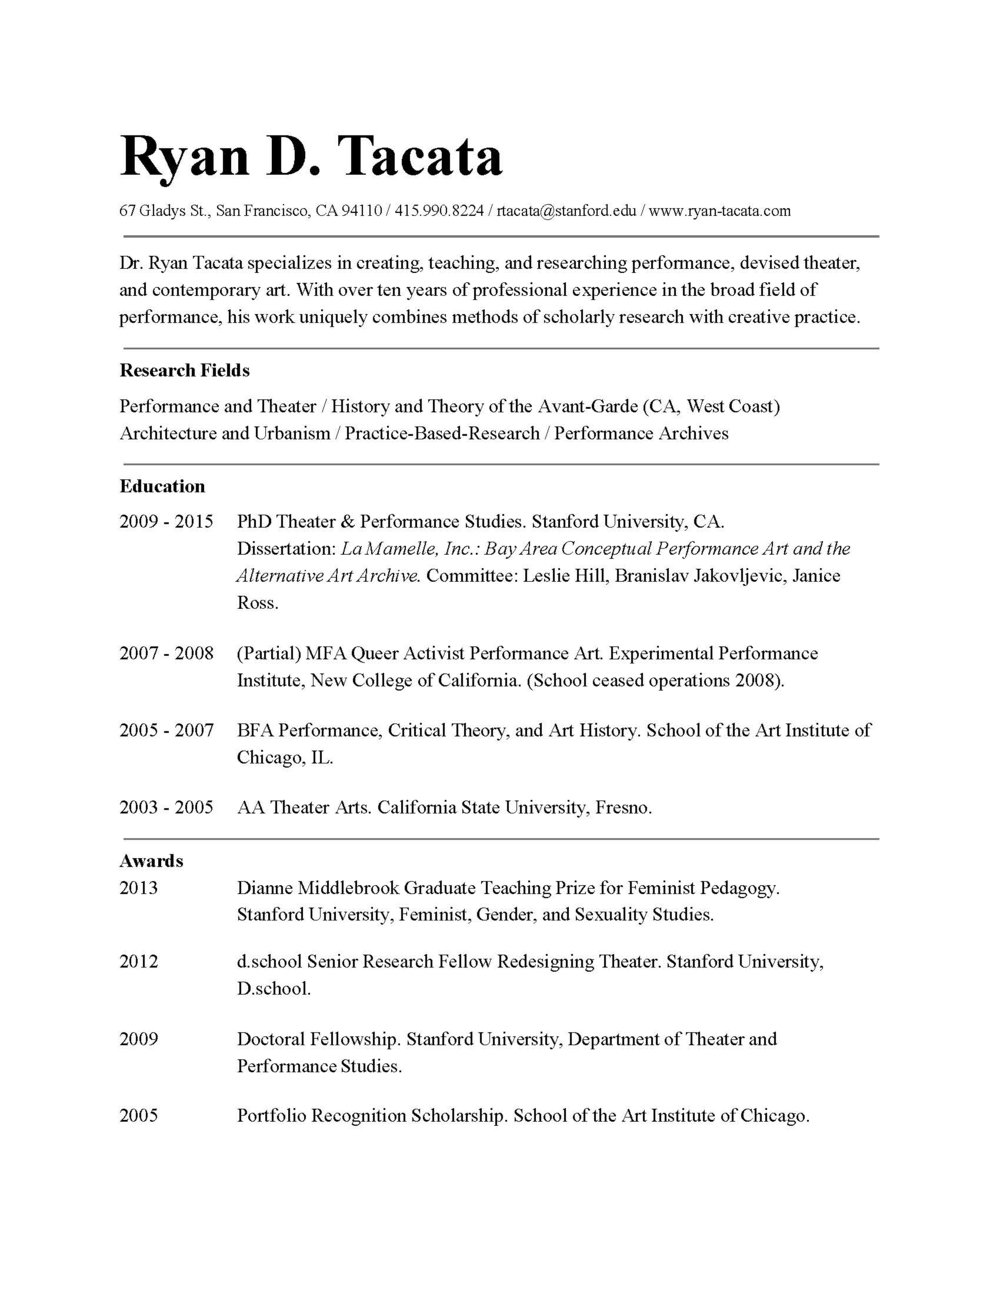 Ryan D Tacata CV (Updated 1-2019)_Page_1.jpg